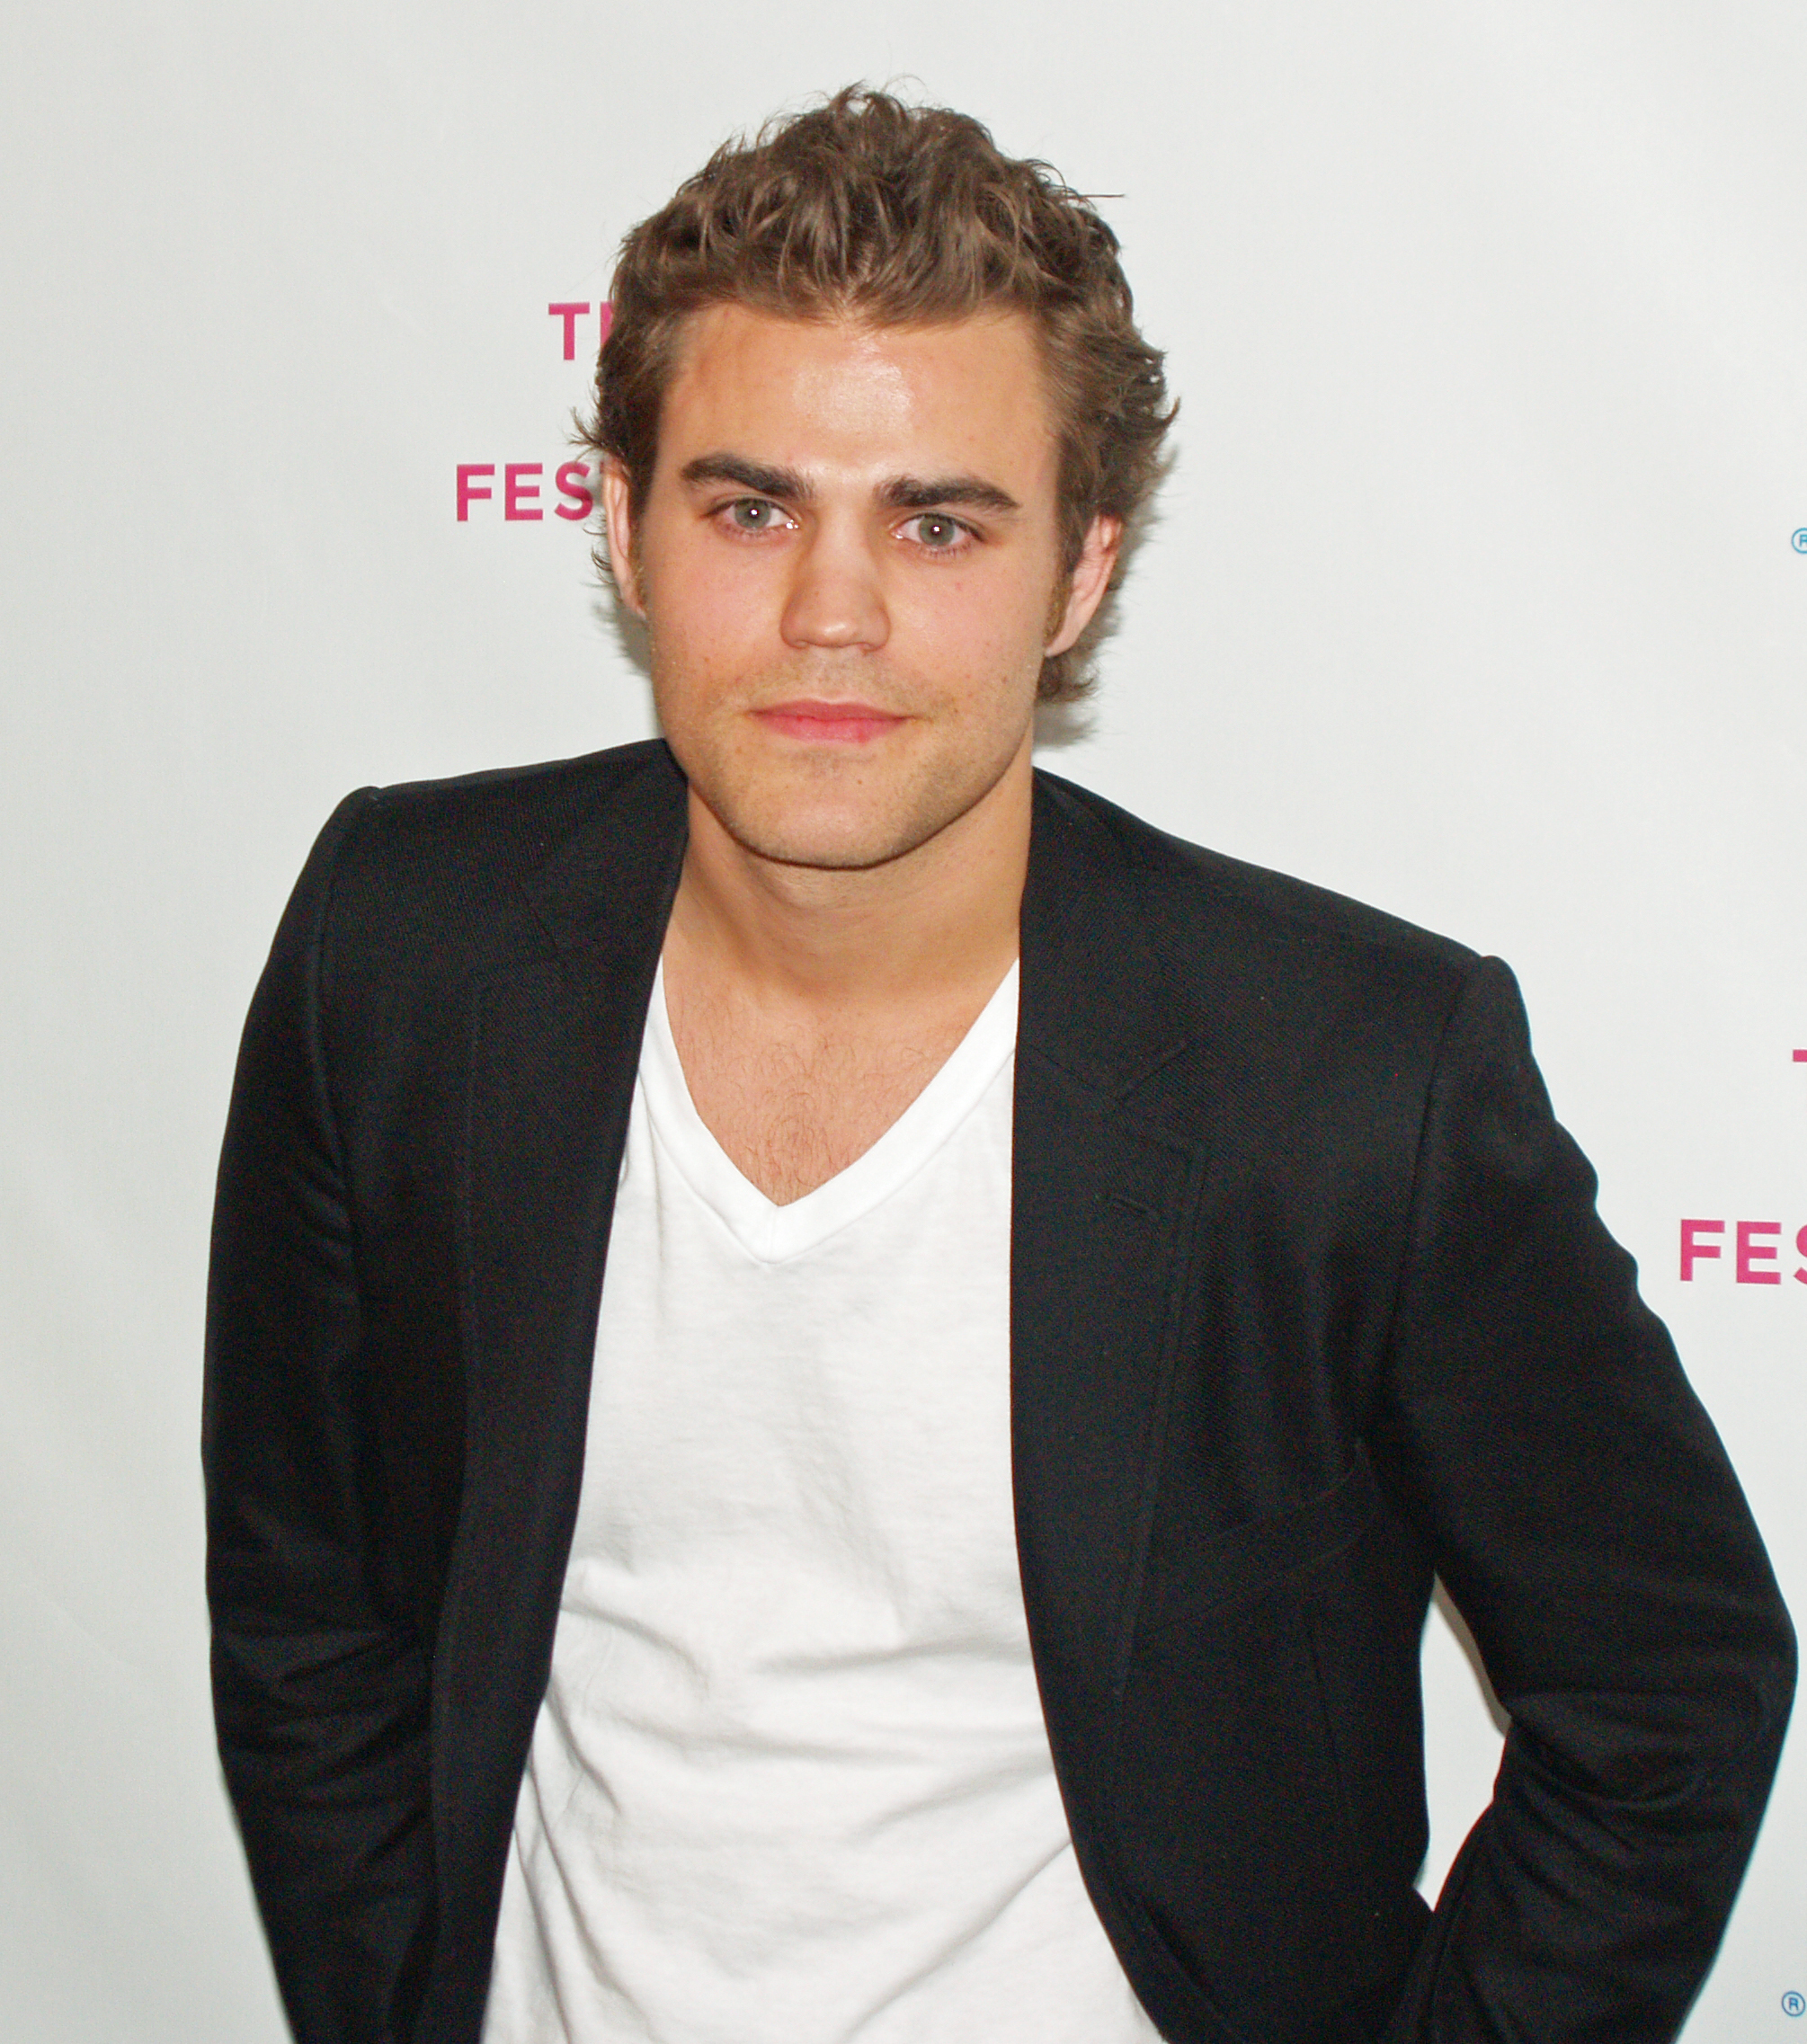 http://images2.fanpop.com/images/photos/6100000/Paul-Wesley-cast-as-Stefan-the-vampire-diaries-6114811-2010-2274.jpg